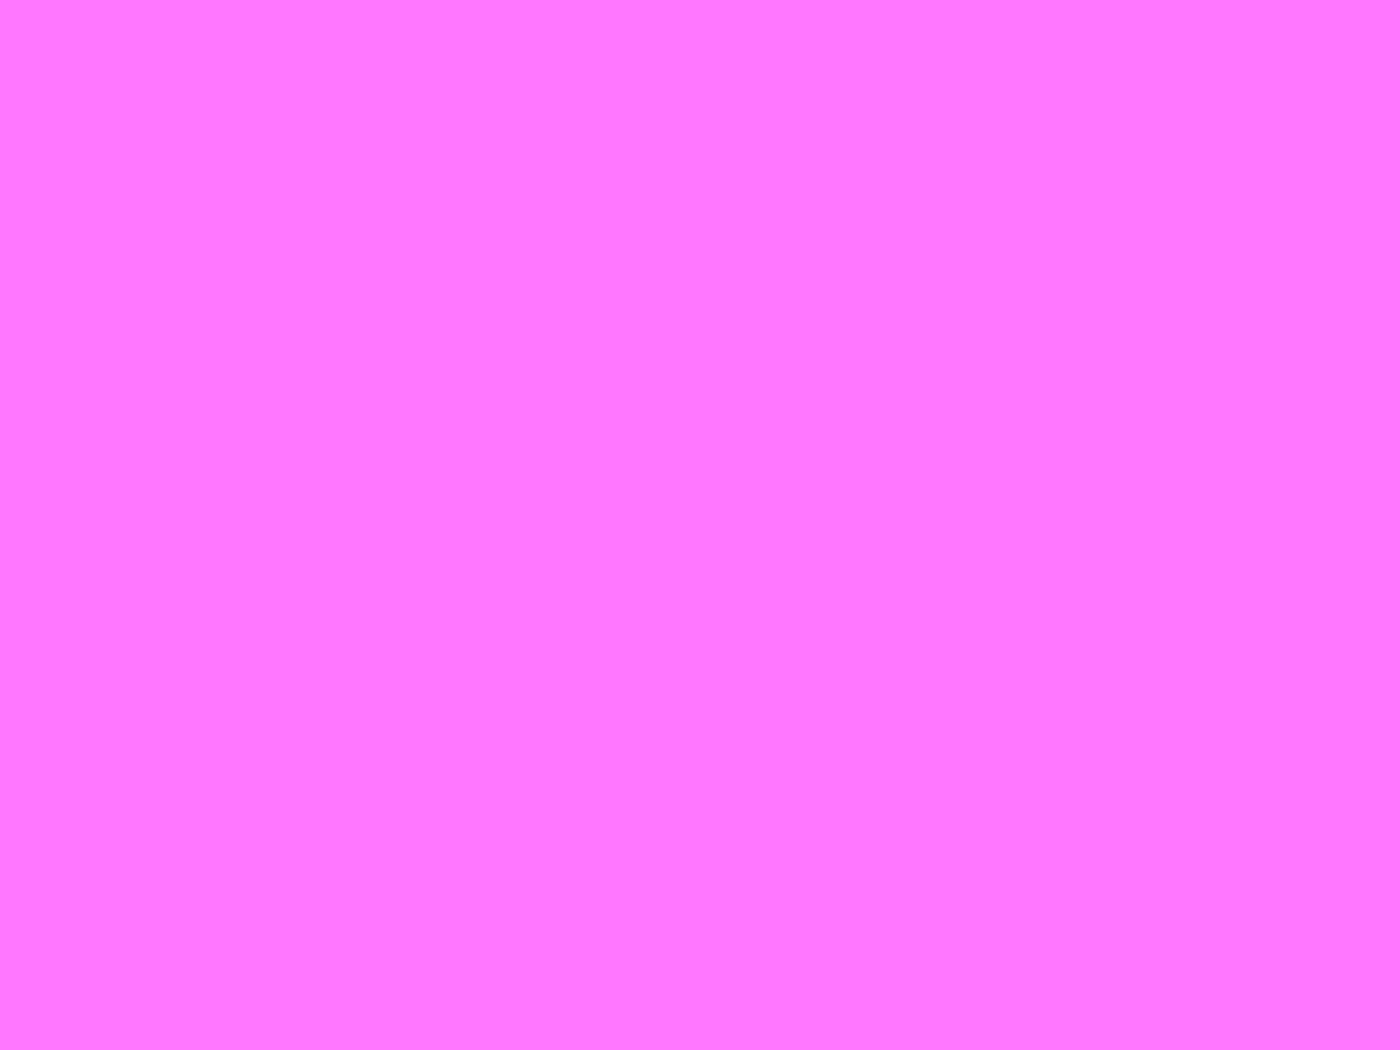 1400x1050 Fuchsia Pink Solid Color Background